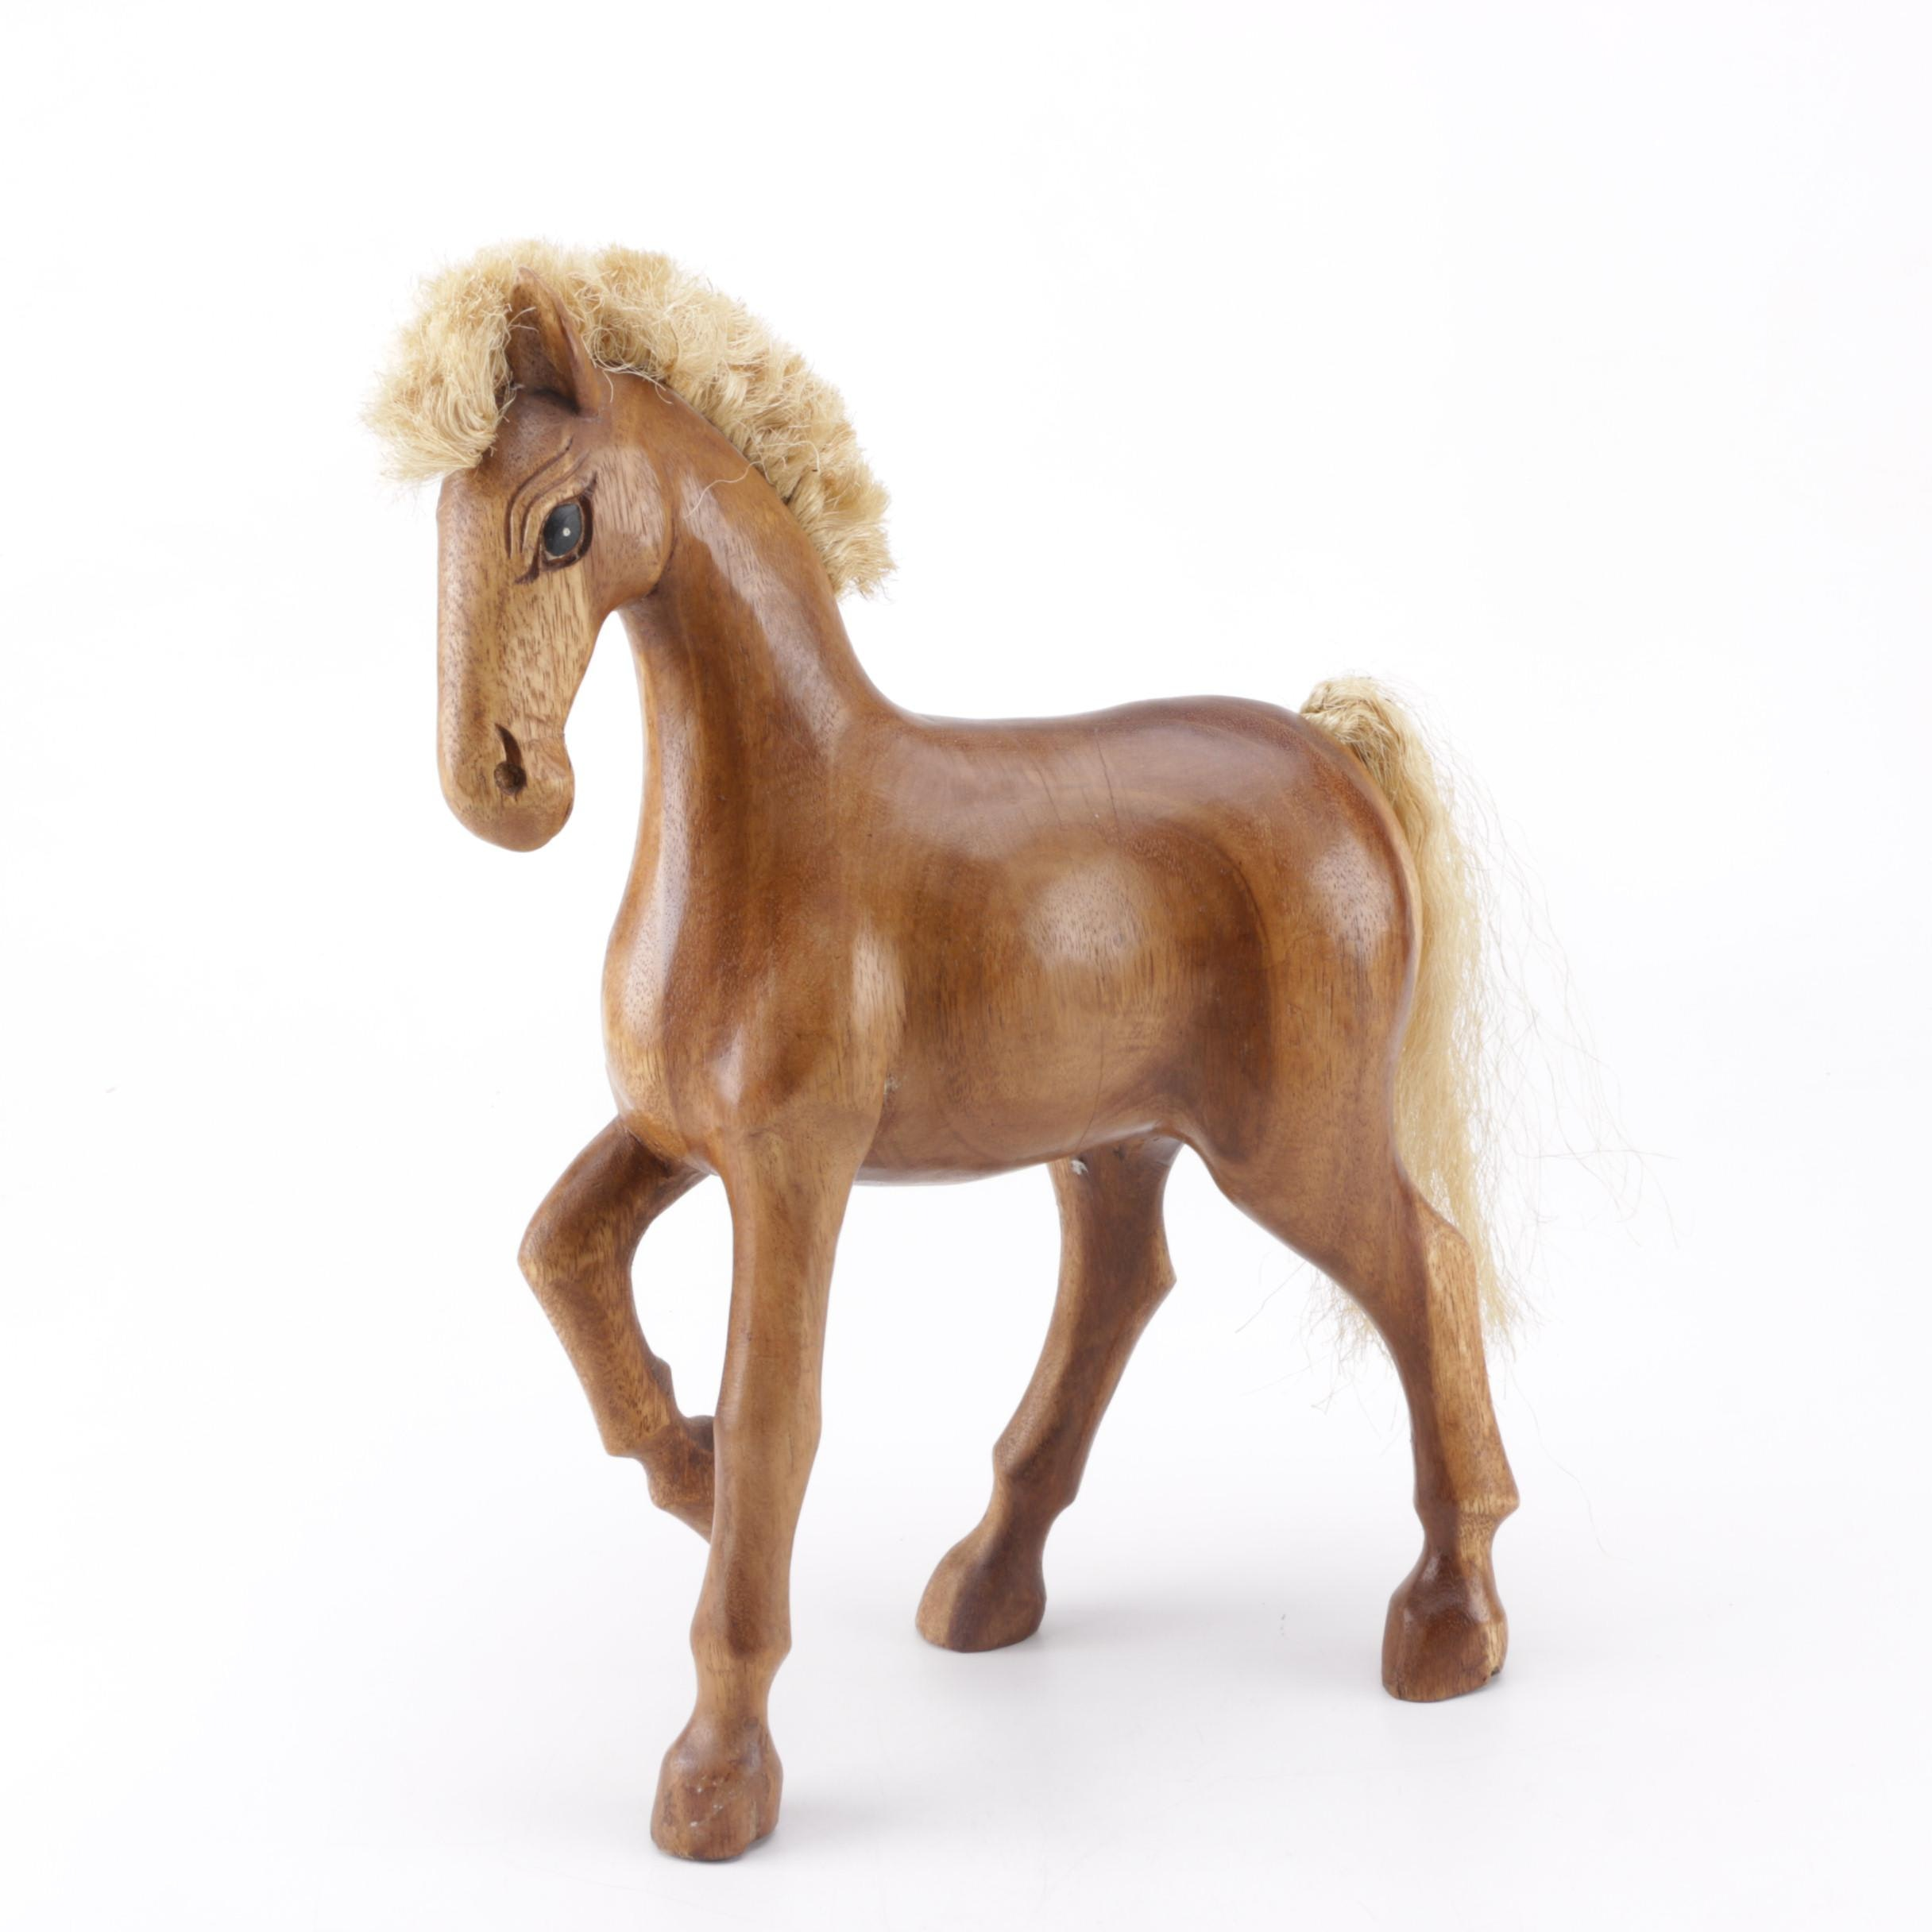 Decorative Carved Wooden Horse